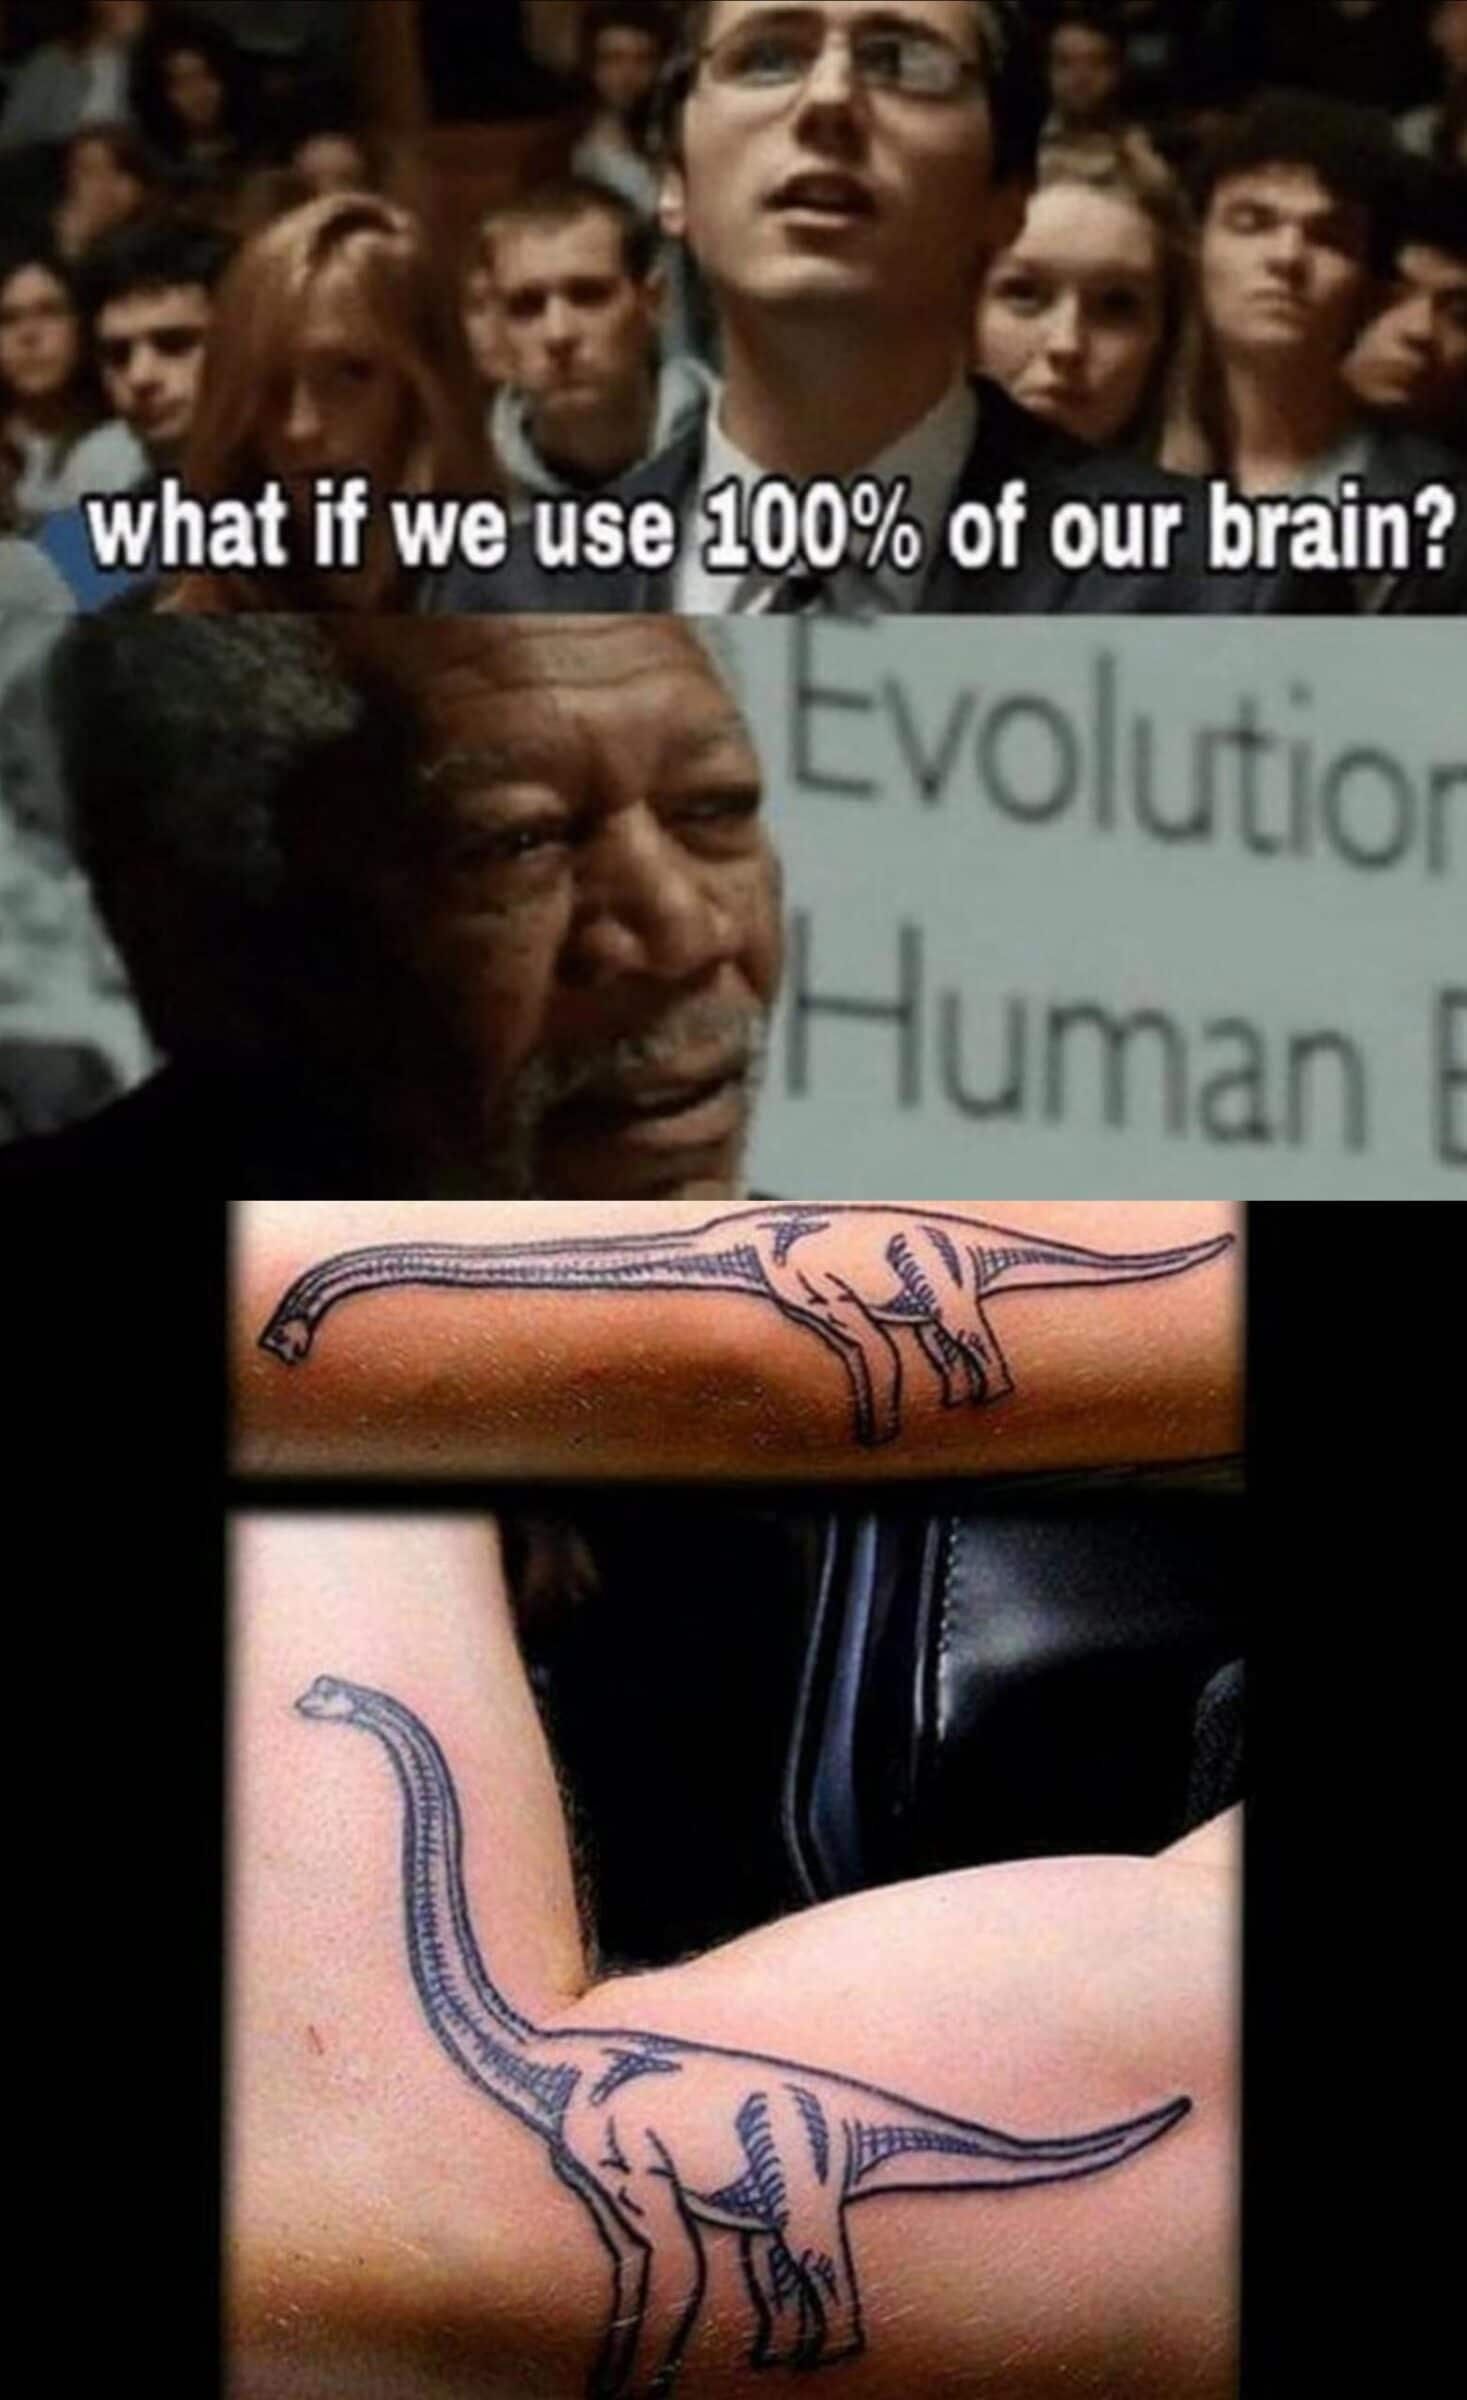 Dank,  other memes Dank,  text: what if we useg00% of our brain? Evolutior Human